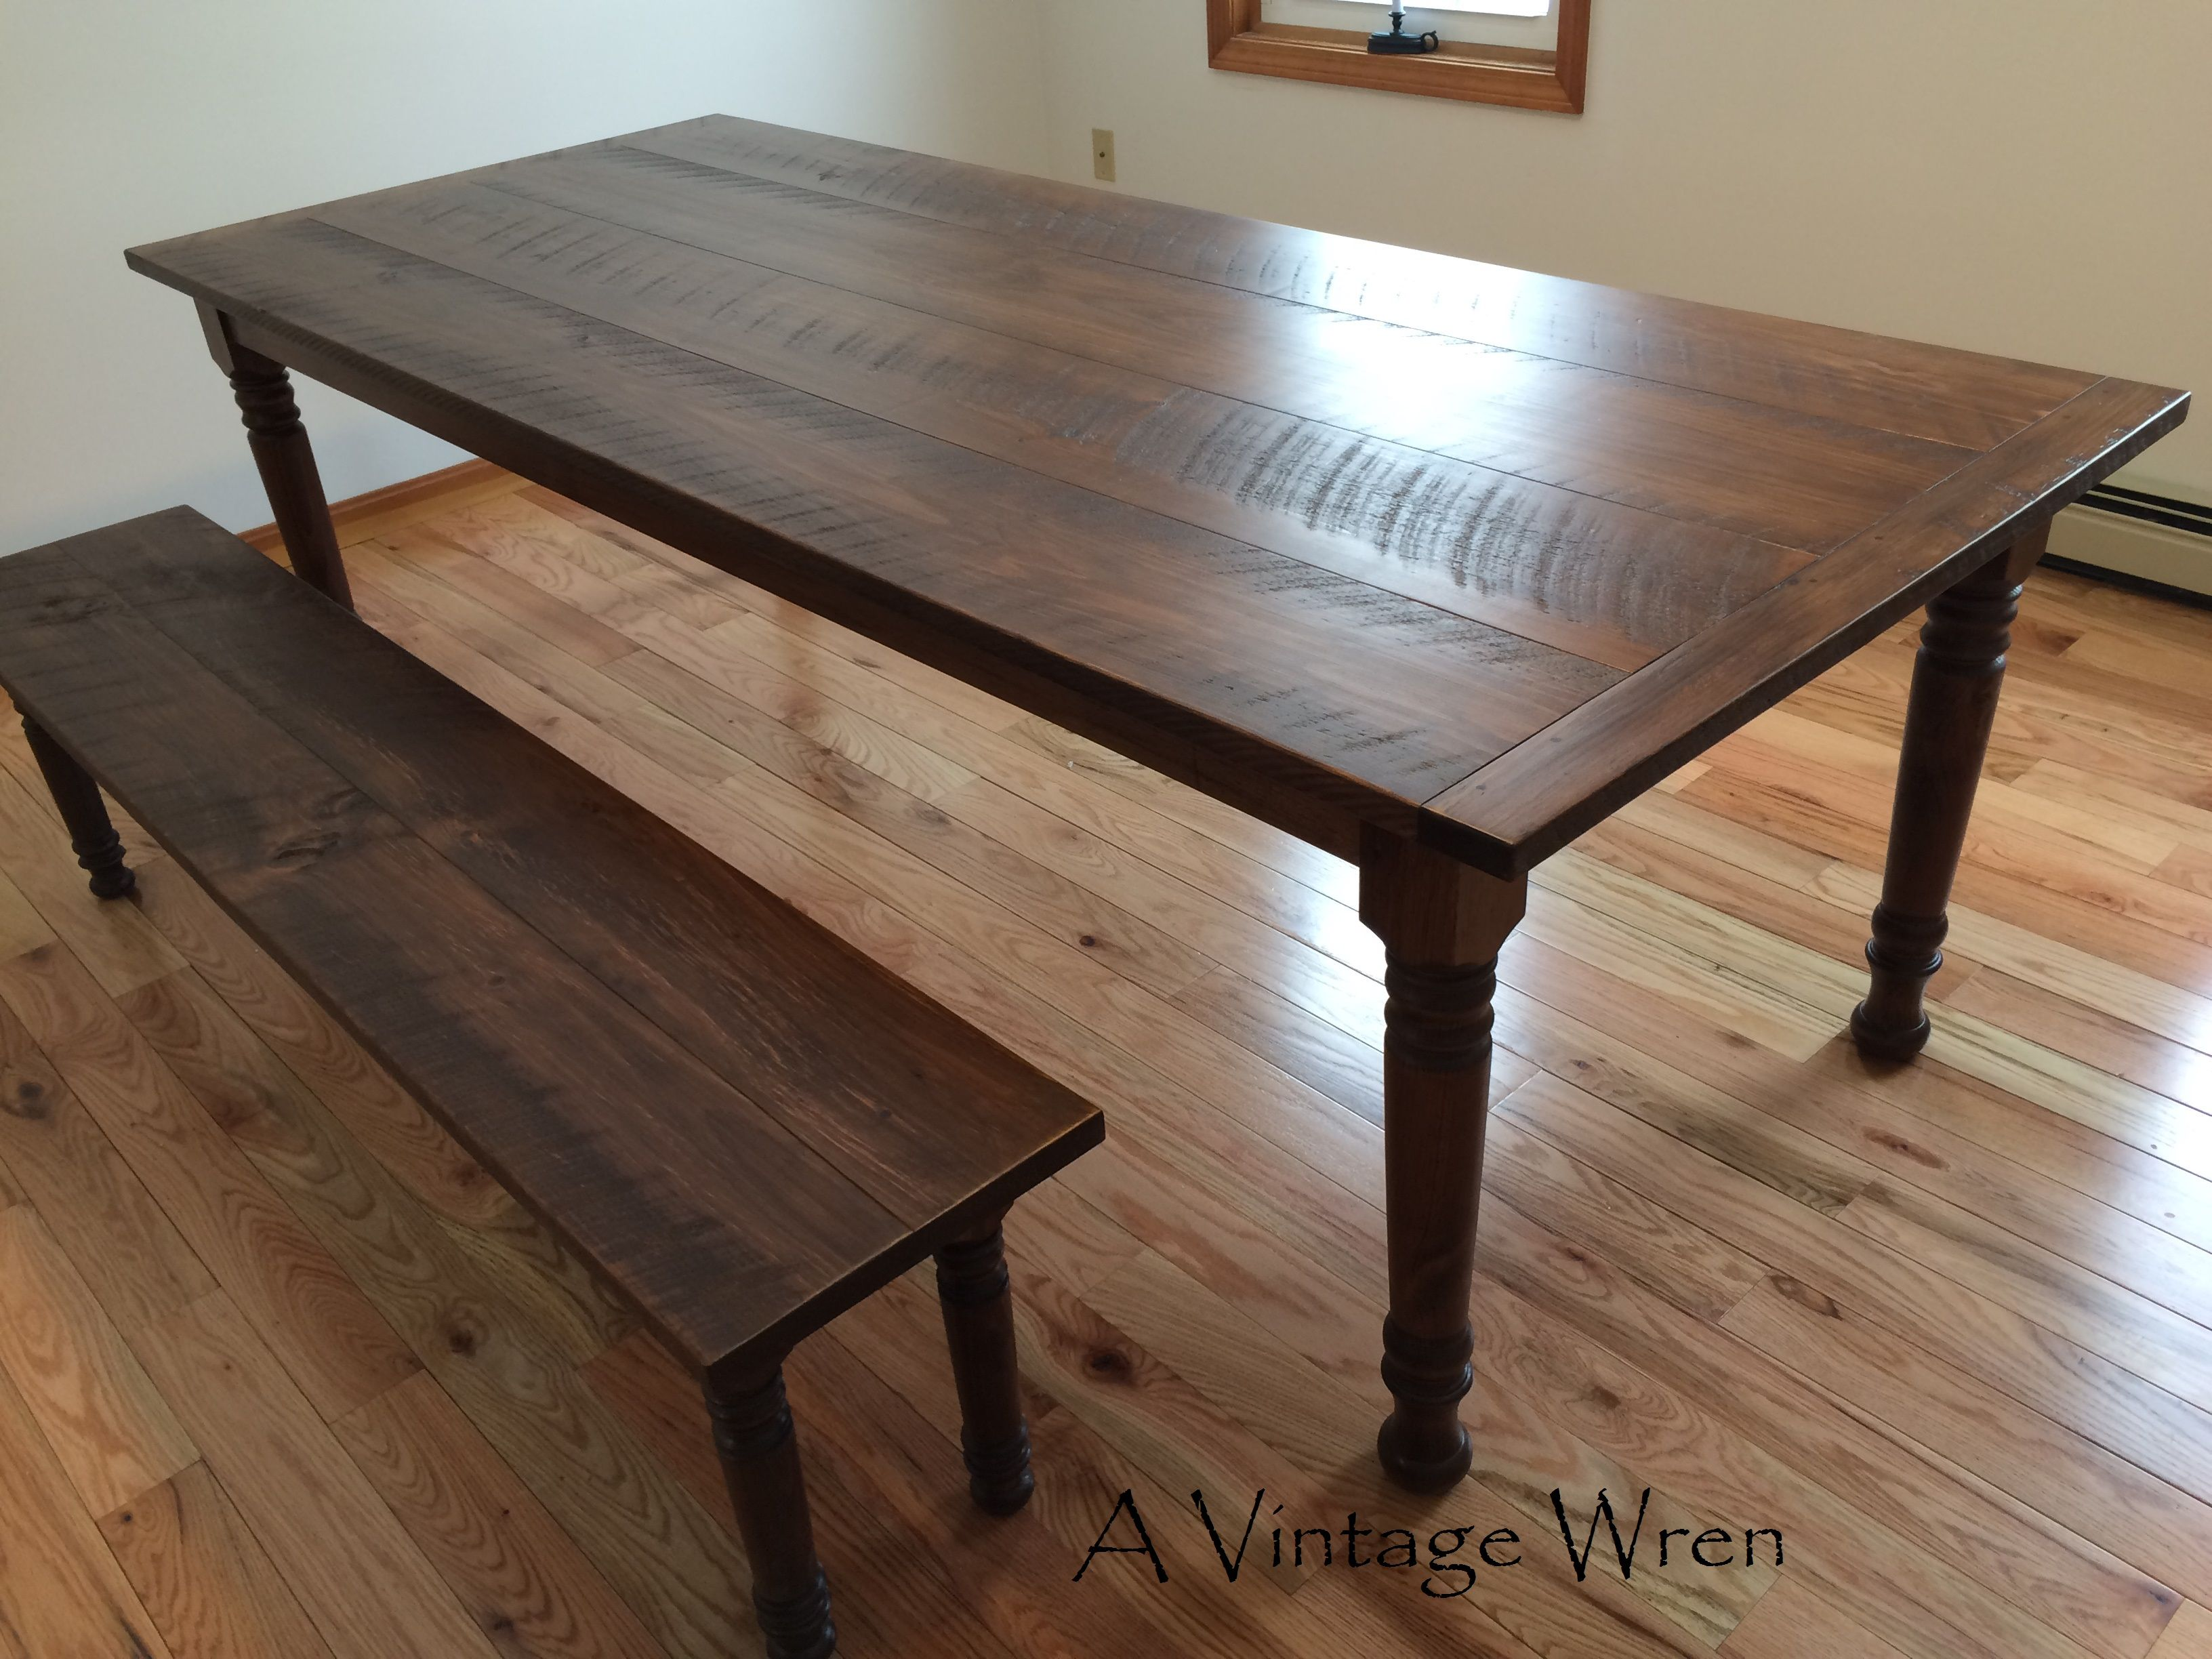 Custom Built Farm Table, Made In New Hampshire. This Table Was 8u0027 Long